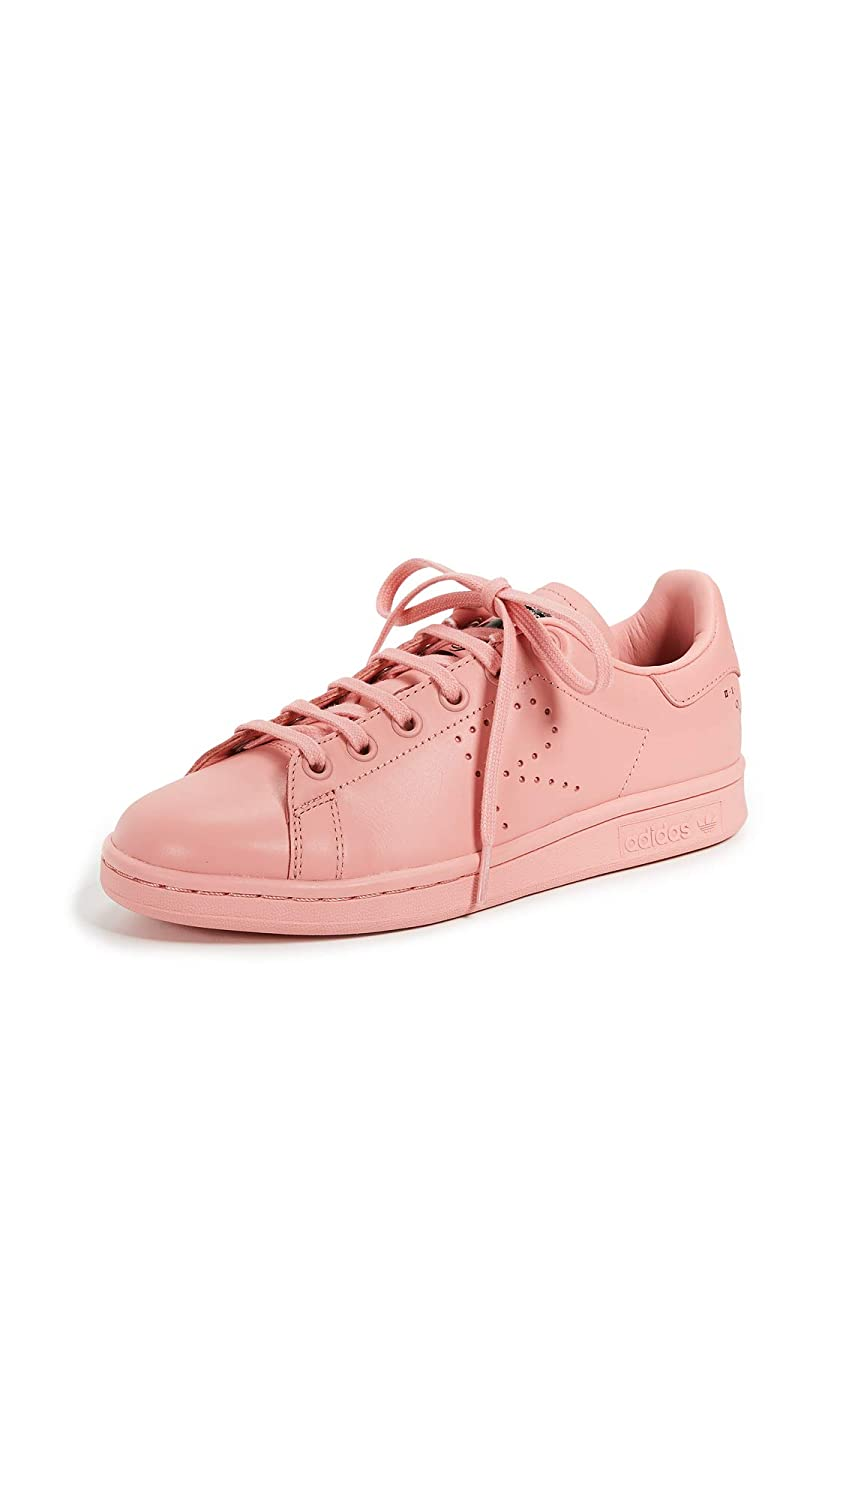 - adidas Women's RAF Simons Stan Smith Sneakers, Tactile pink Bliss Pink White, 5 M UK